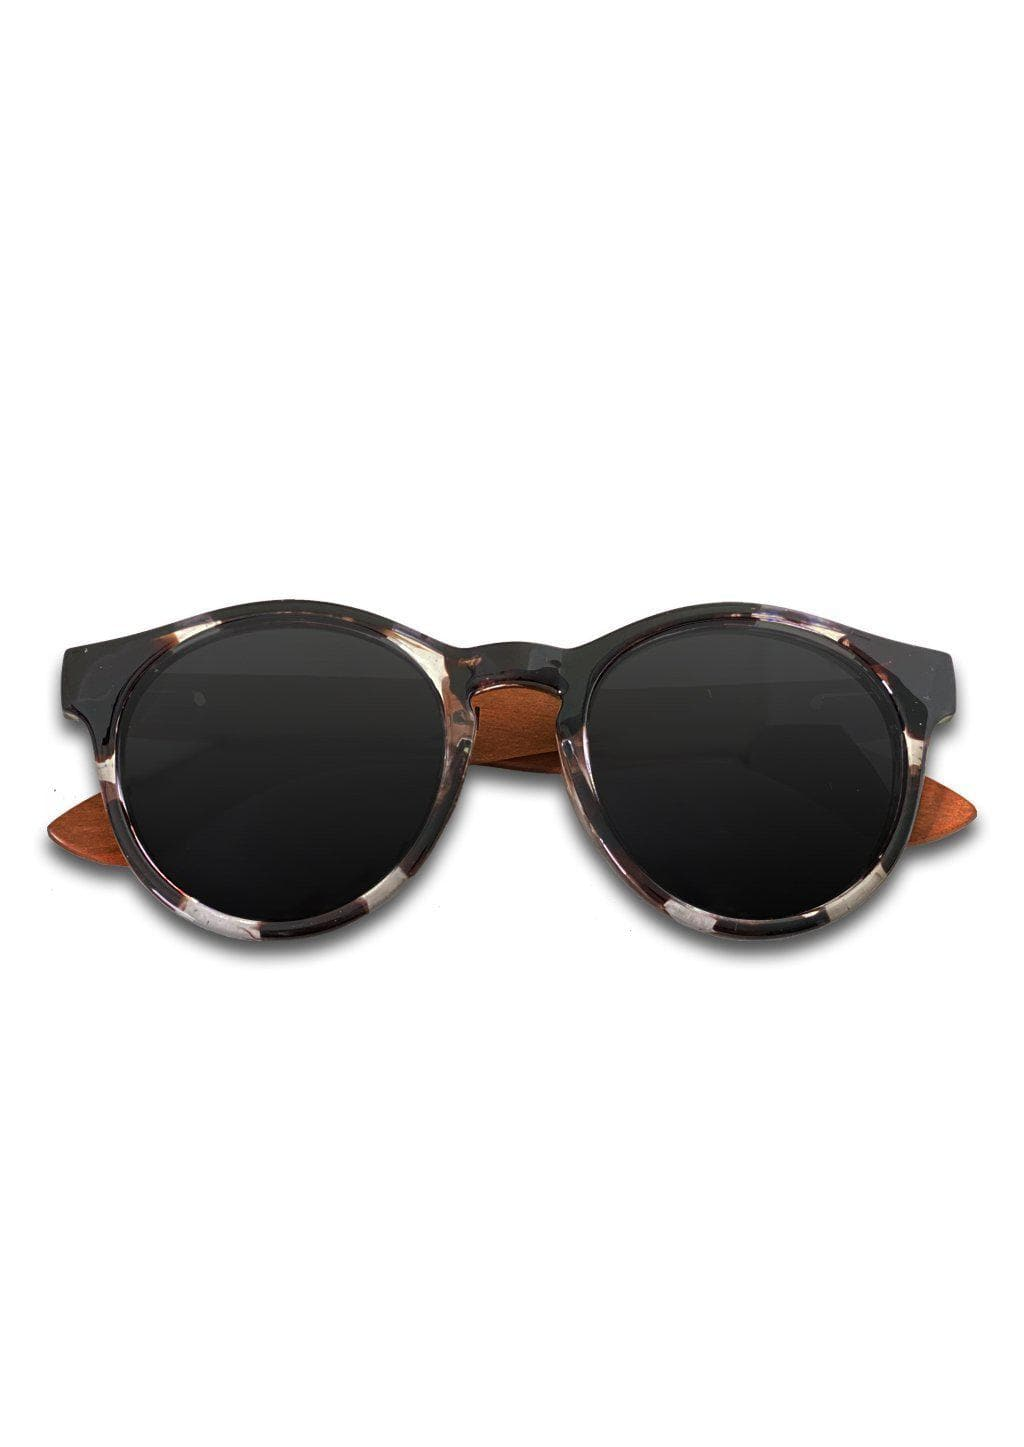 Eyewood Round - Montana - Wooden sunglasses with round black and white frames.